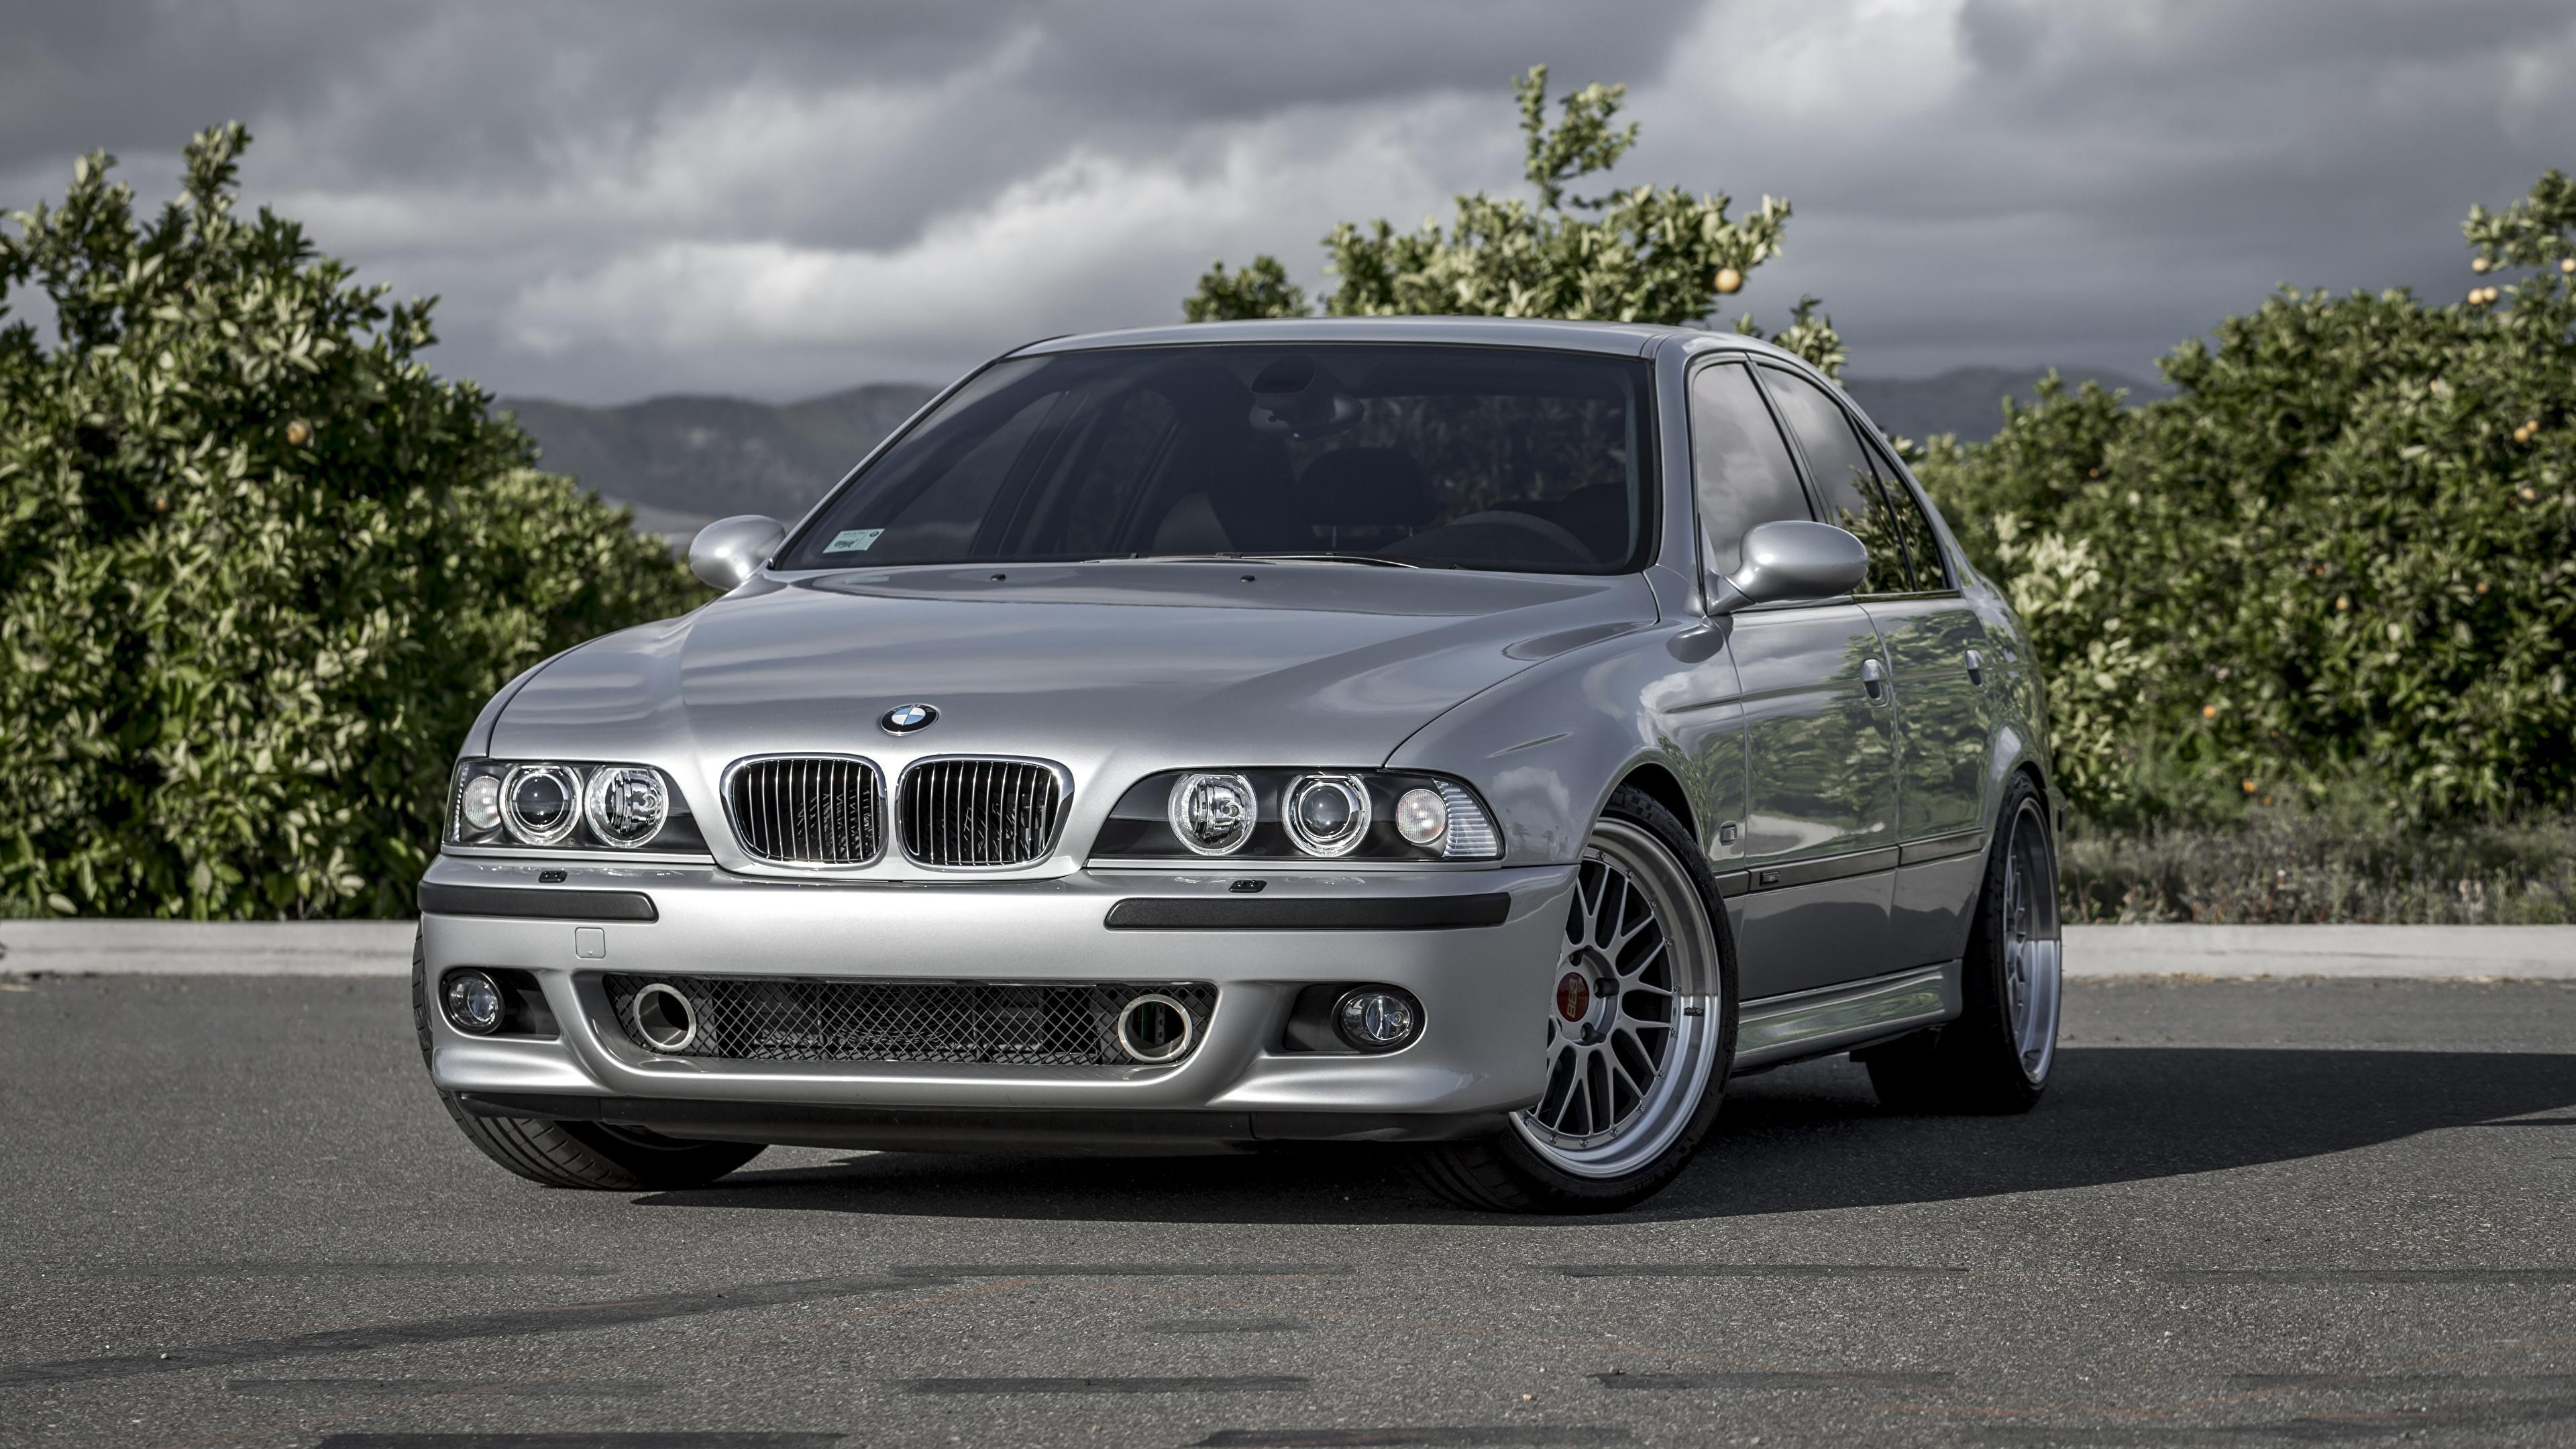 Bmw E39 Wallpapers Wallpaper Cave